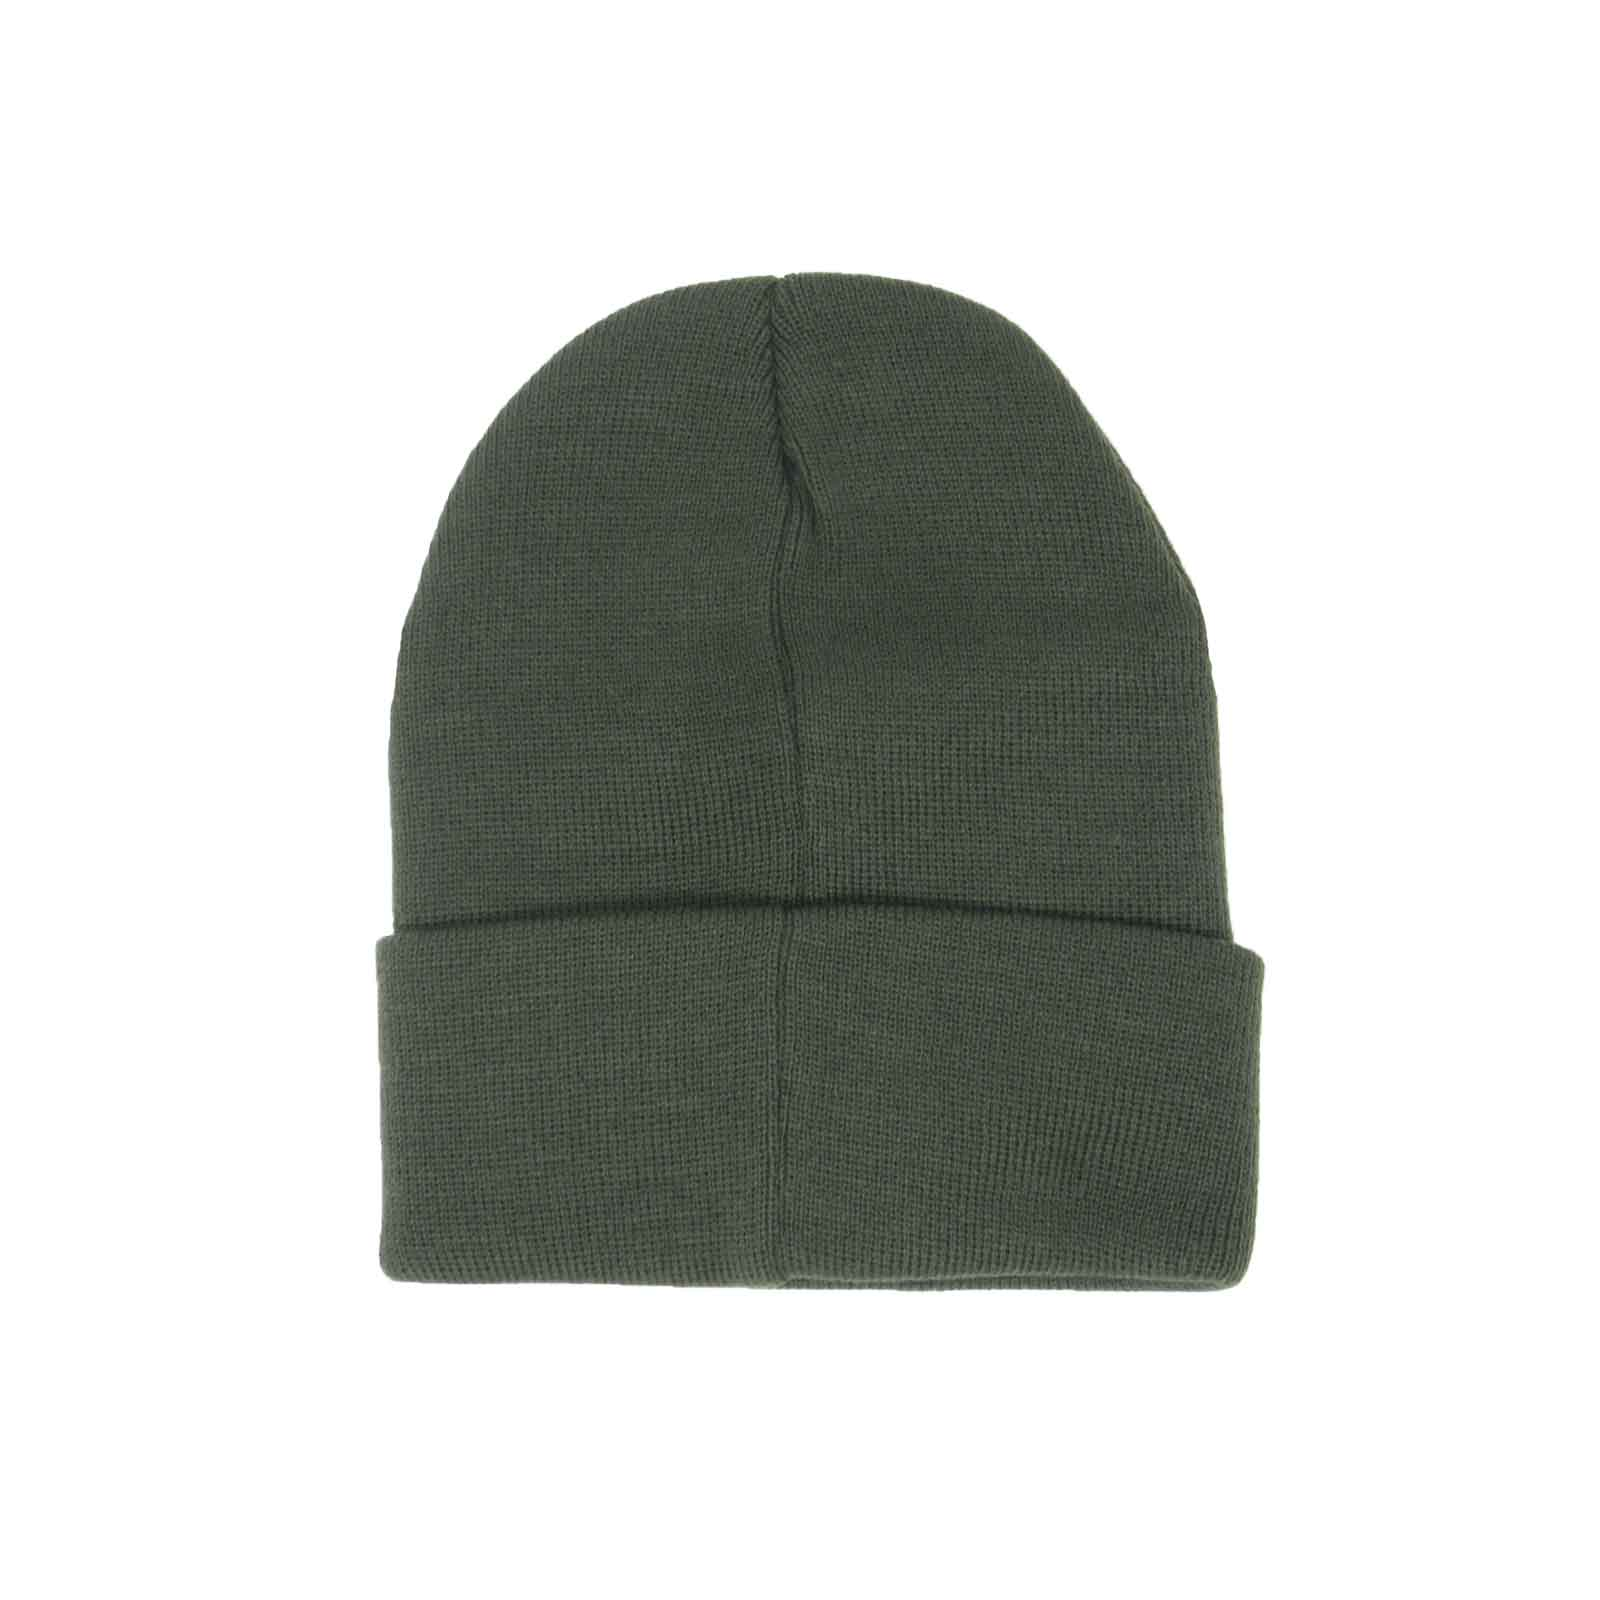 32955e40a05 Details about Mens Original Penguin Prez Logo Forest Green Cuffed Knitted  Winter Beanie Hat